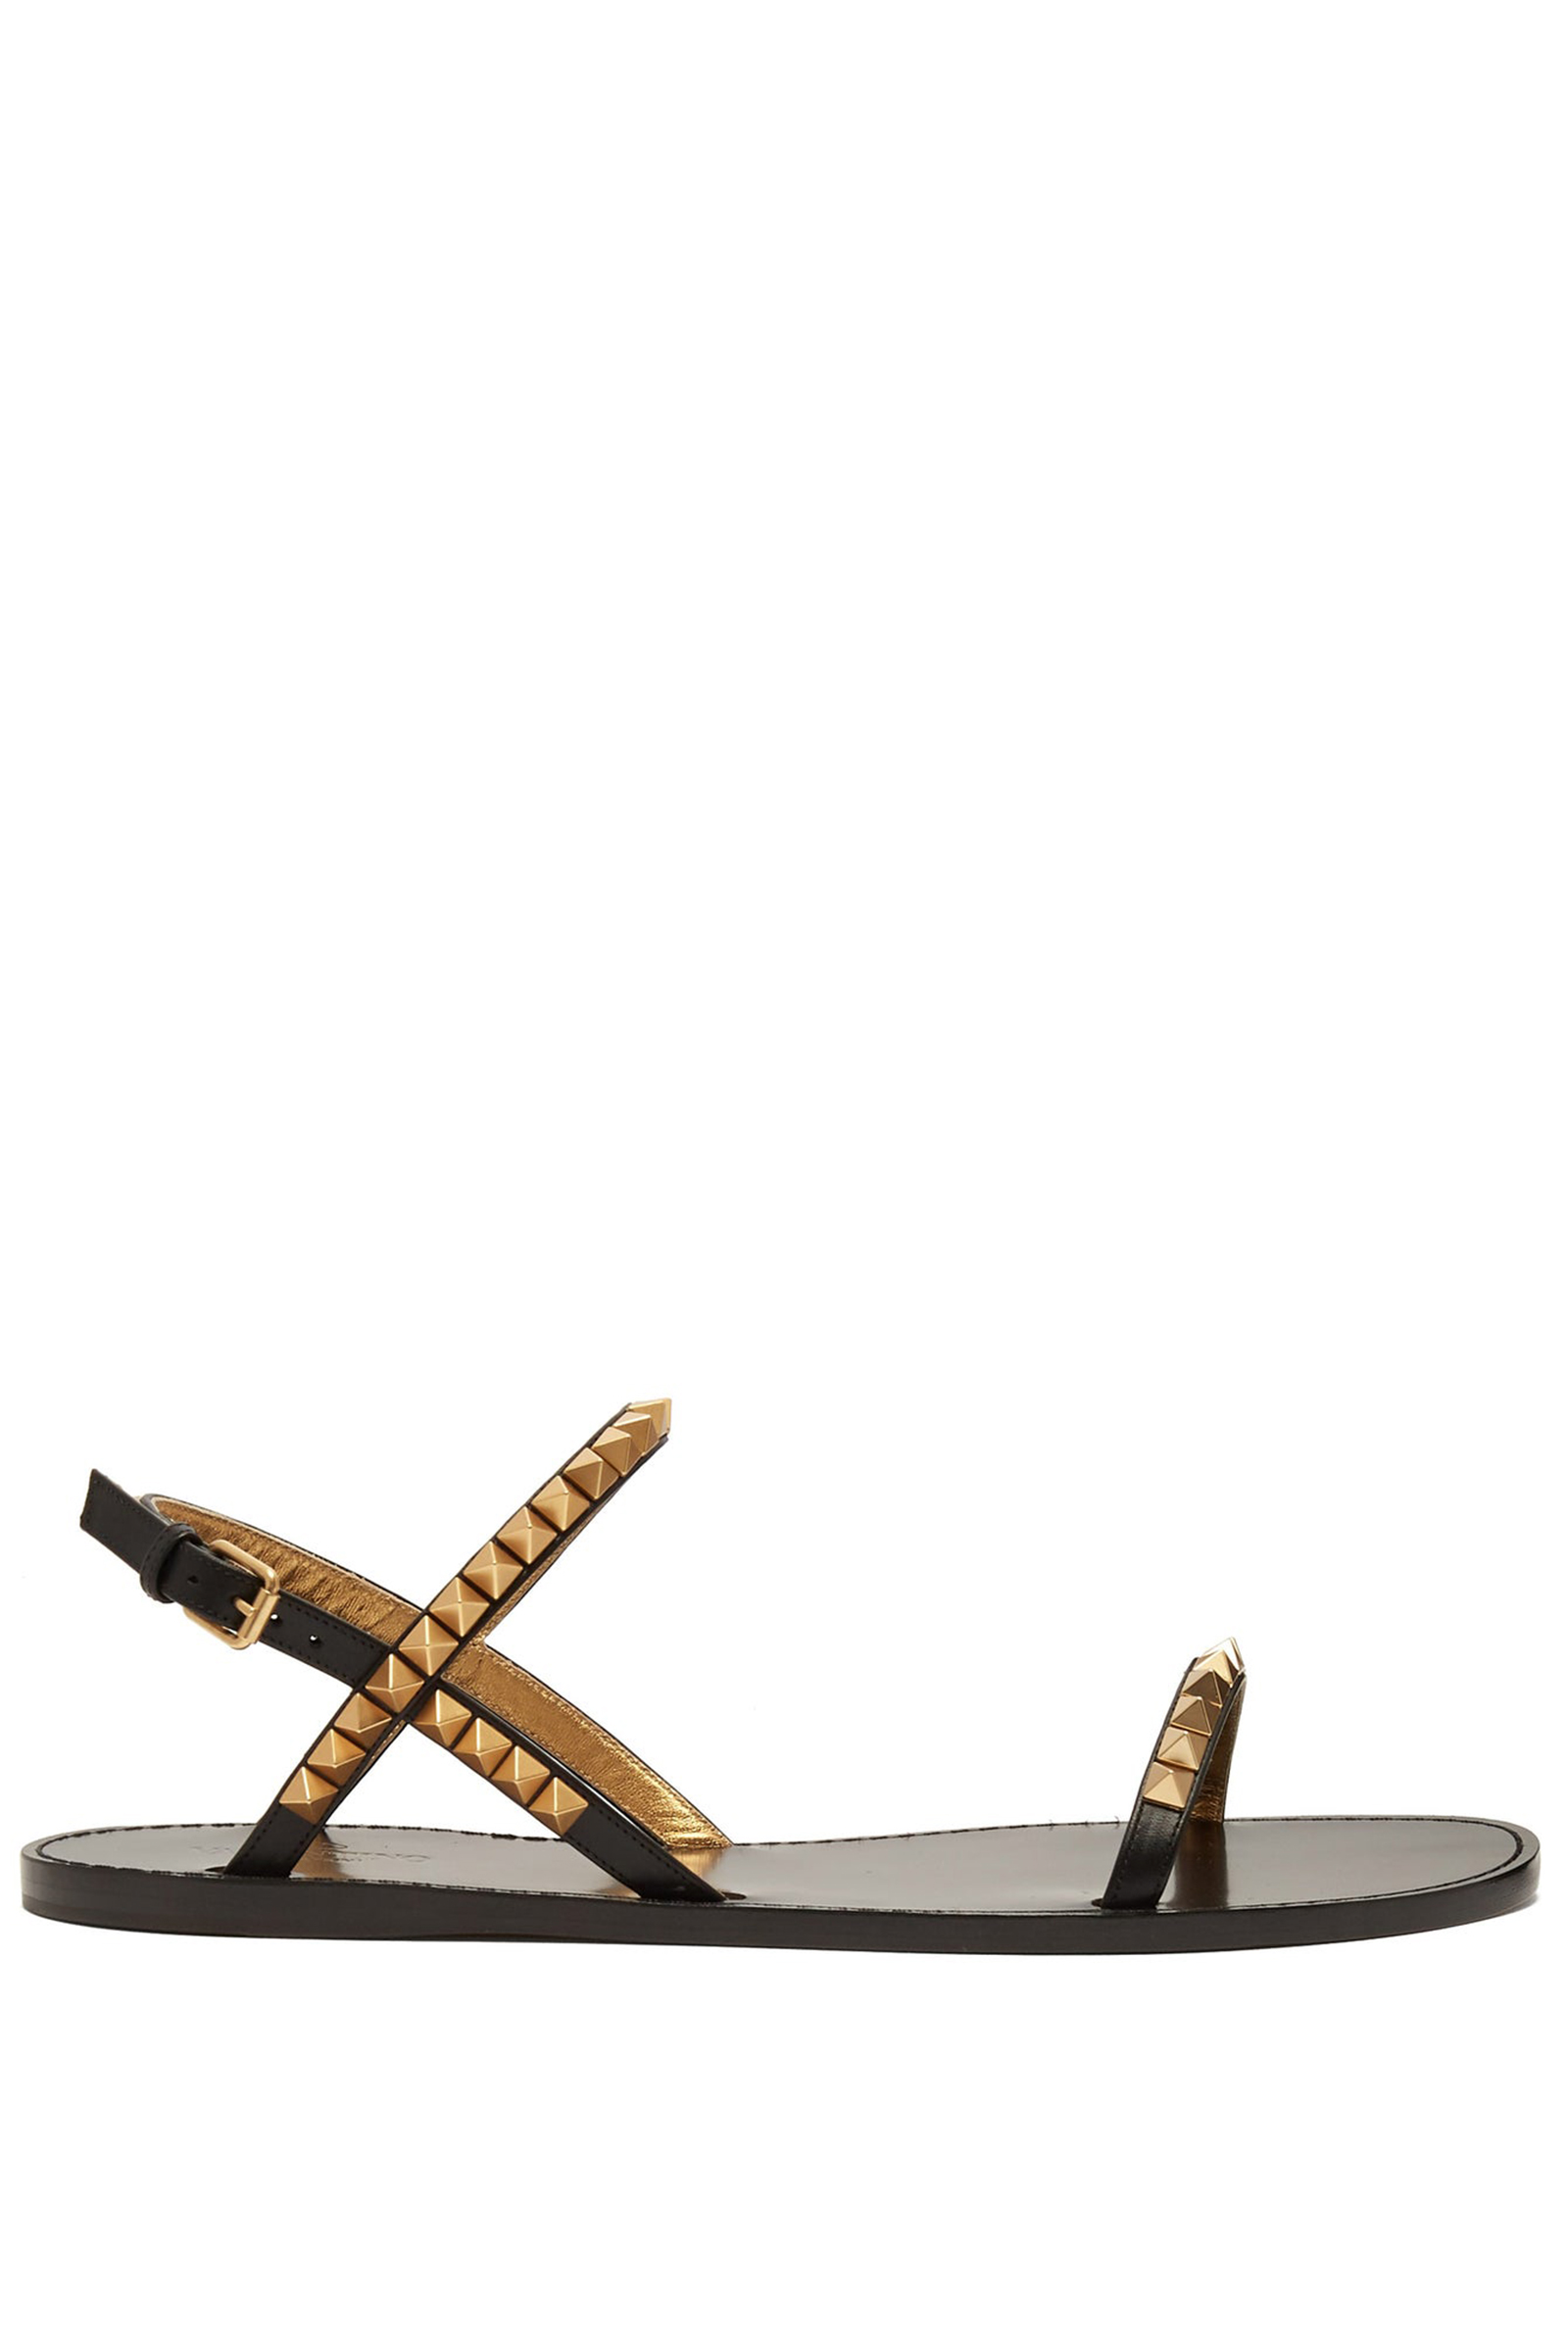 Valentino-Rockstud-Leather-Sandals